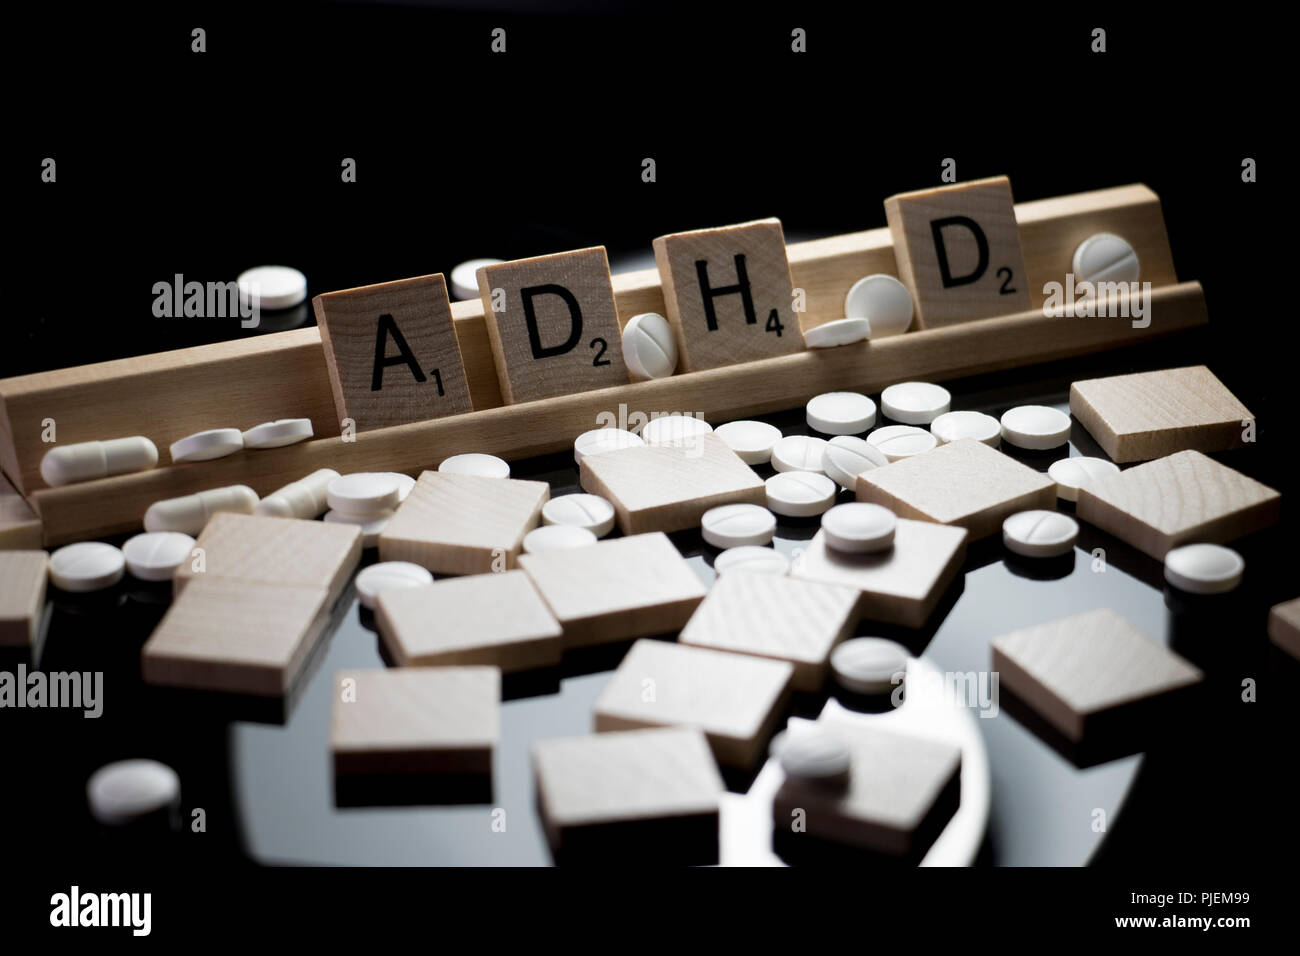 ADHD spelled in Scrabble text with white prescription pills spilled on a black table. Concept of Attention Deficit Hyperactivity Disorder medication - Stock Image